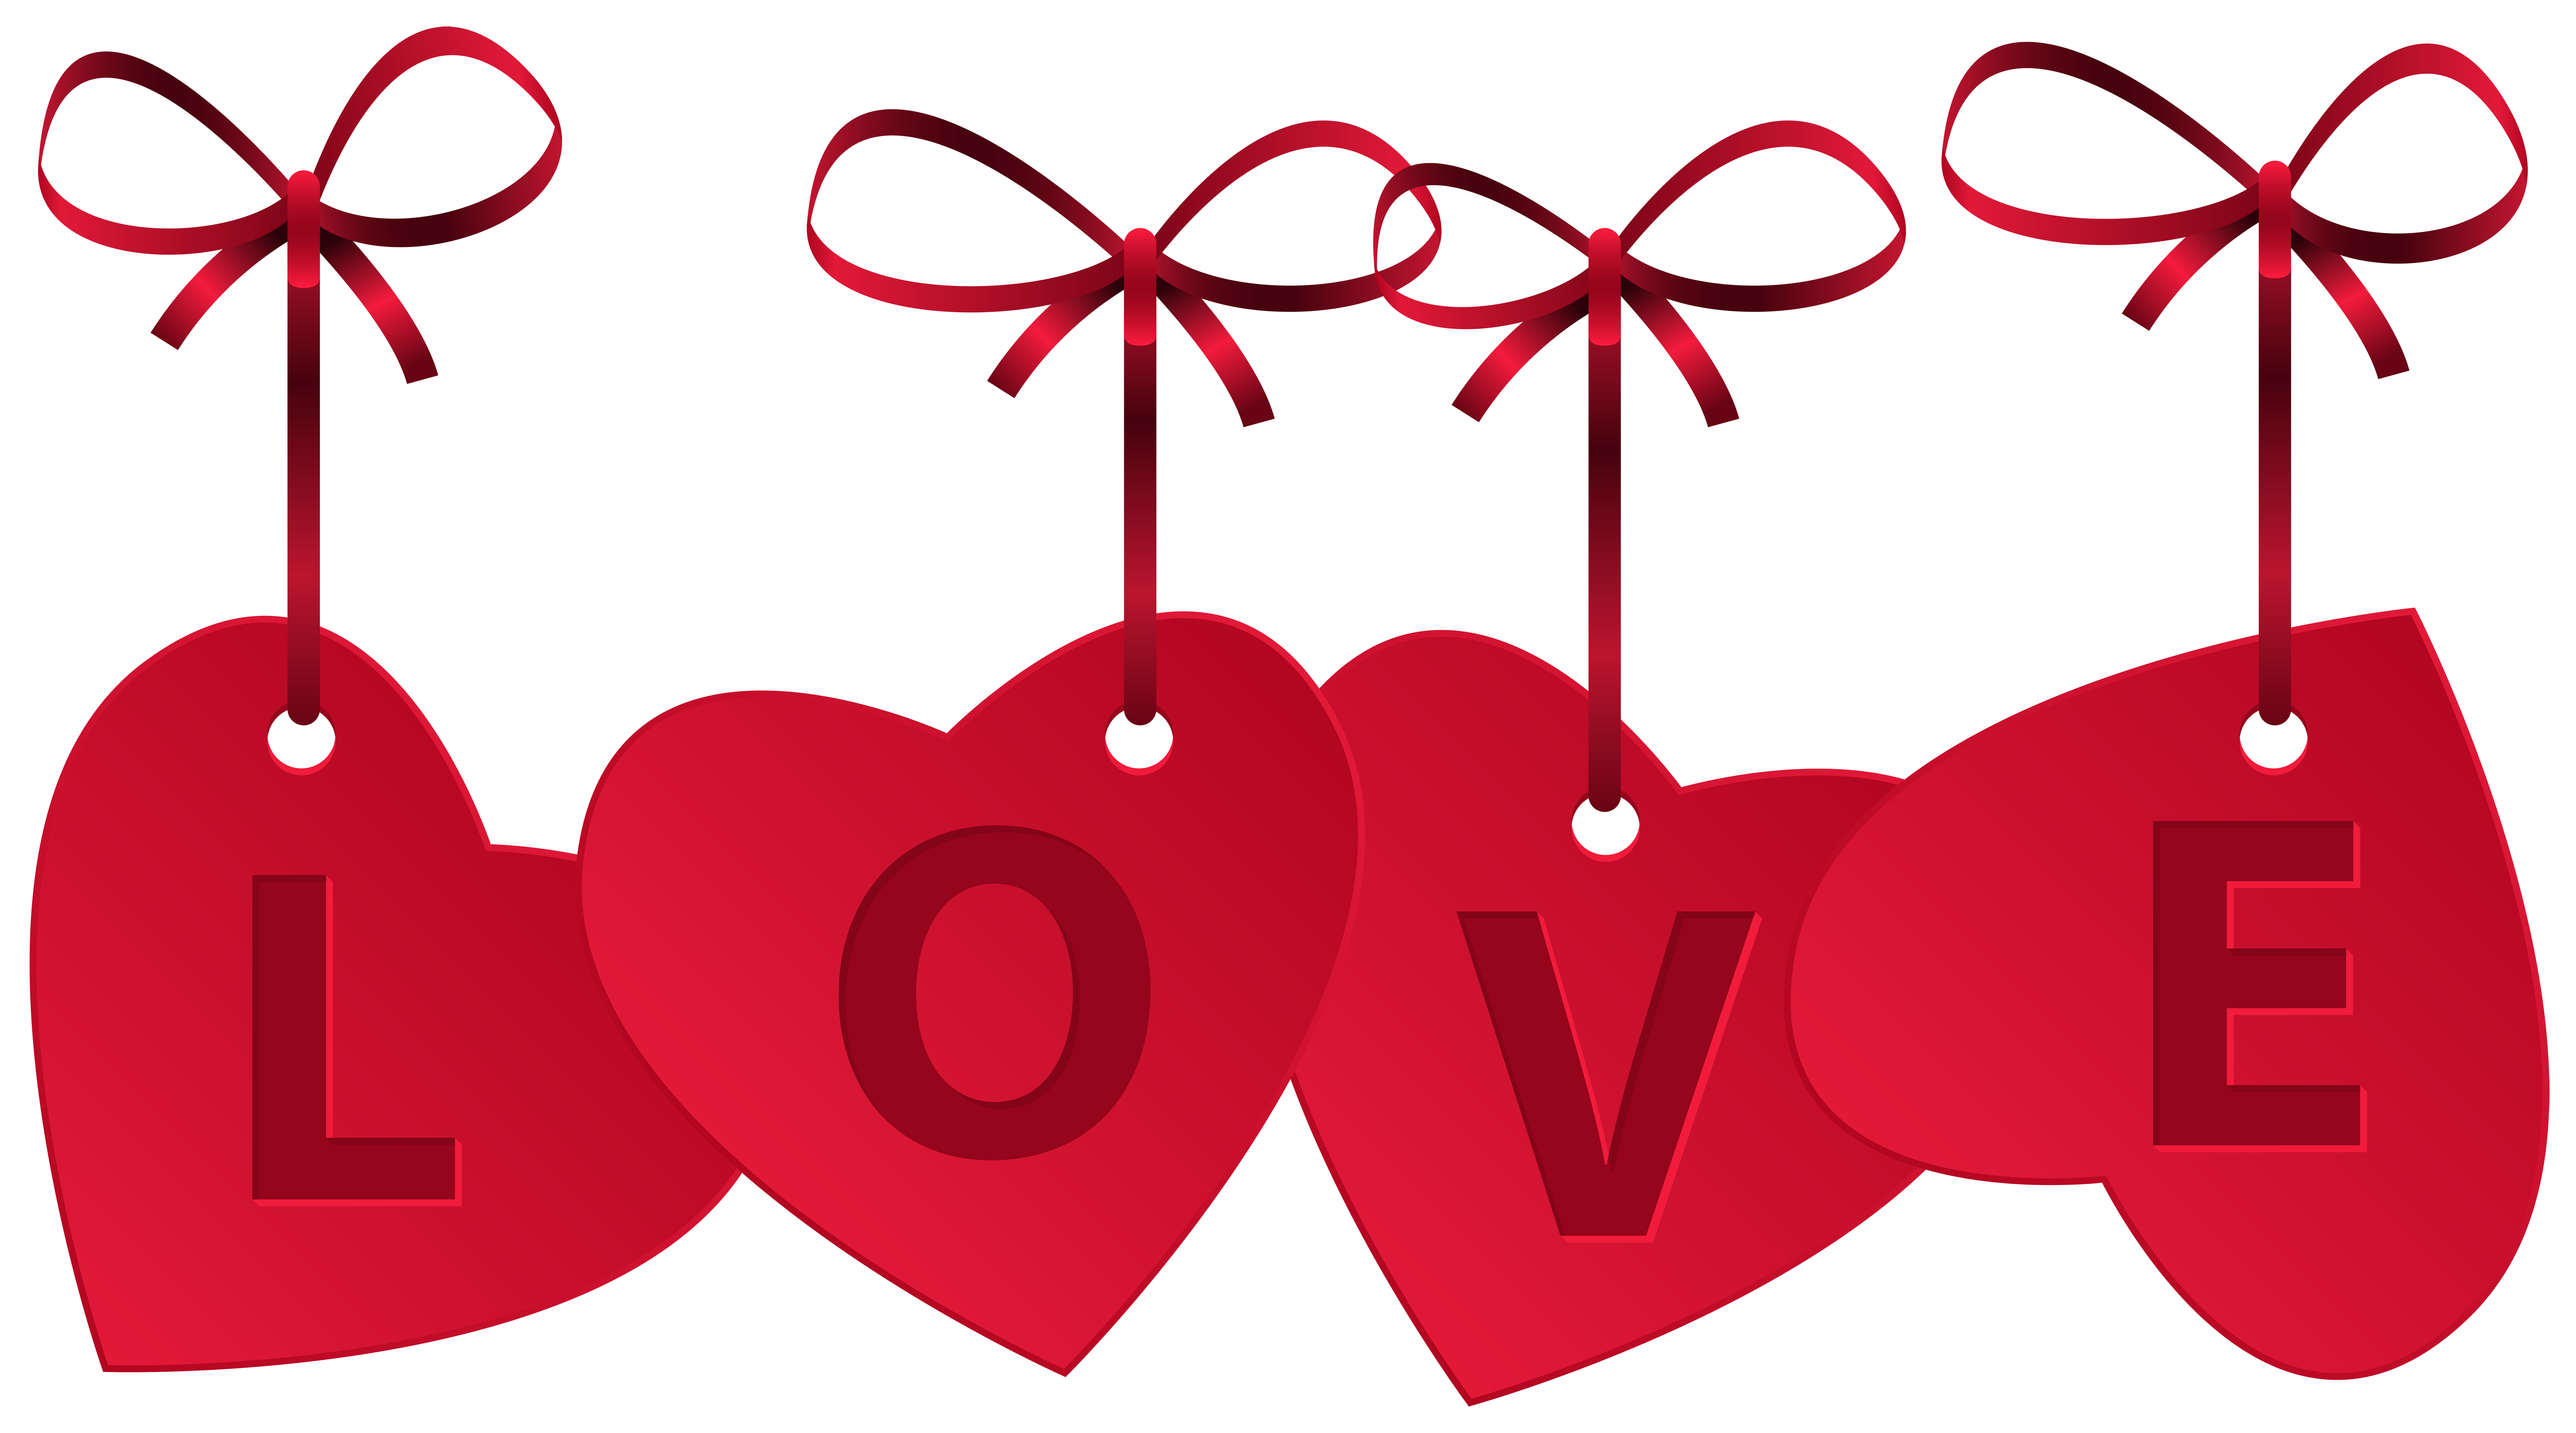 8000x4451 Hearts With Love Decoration Png Clip Art Imageu200b Gallery